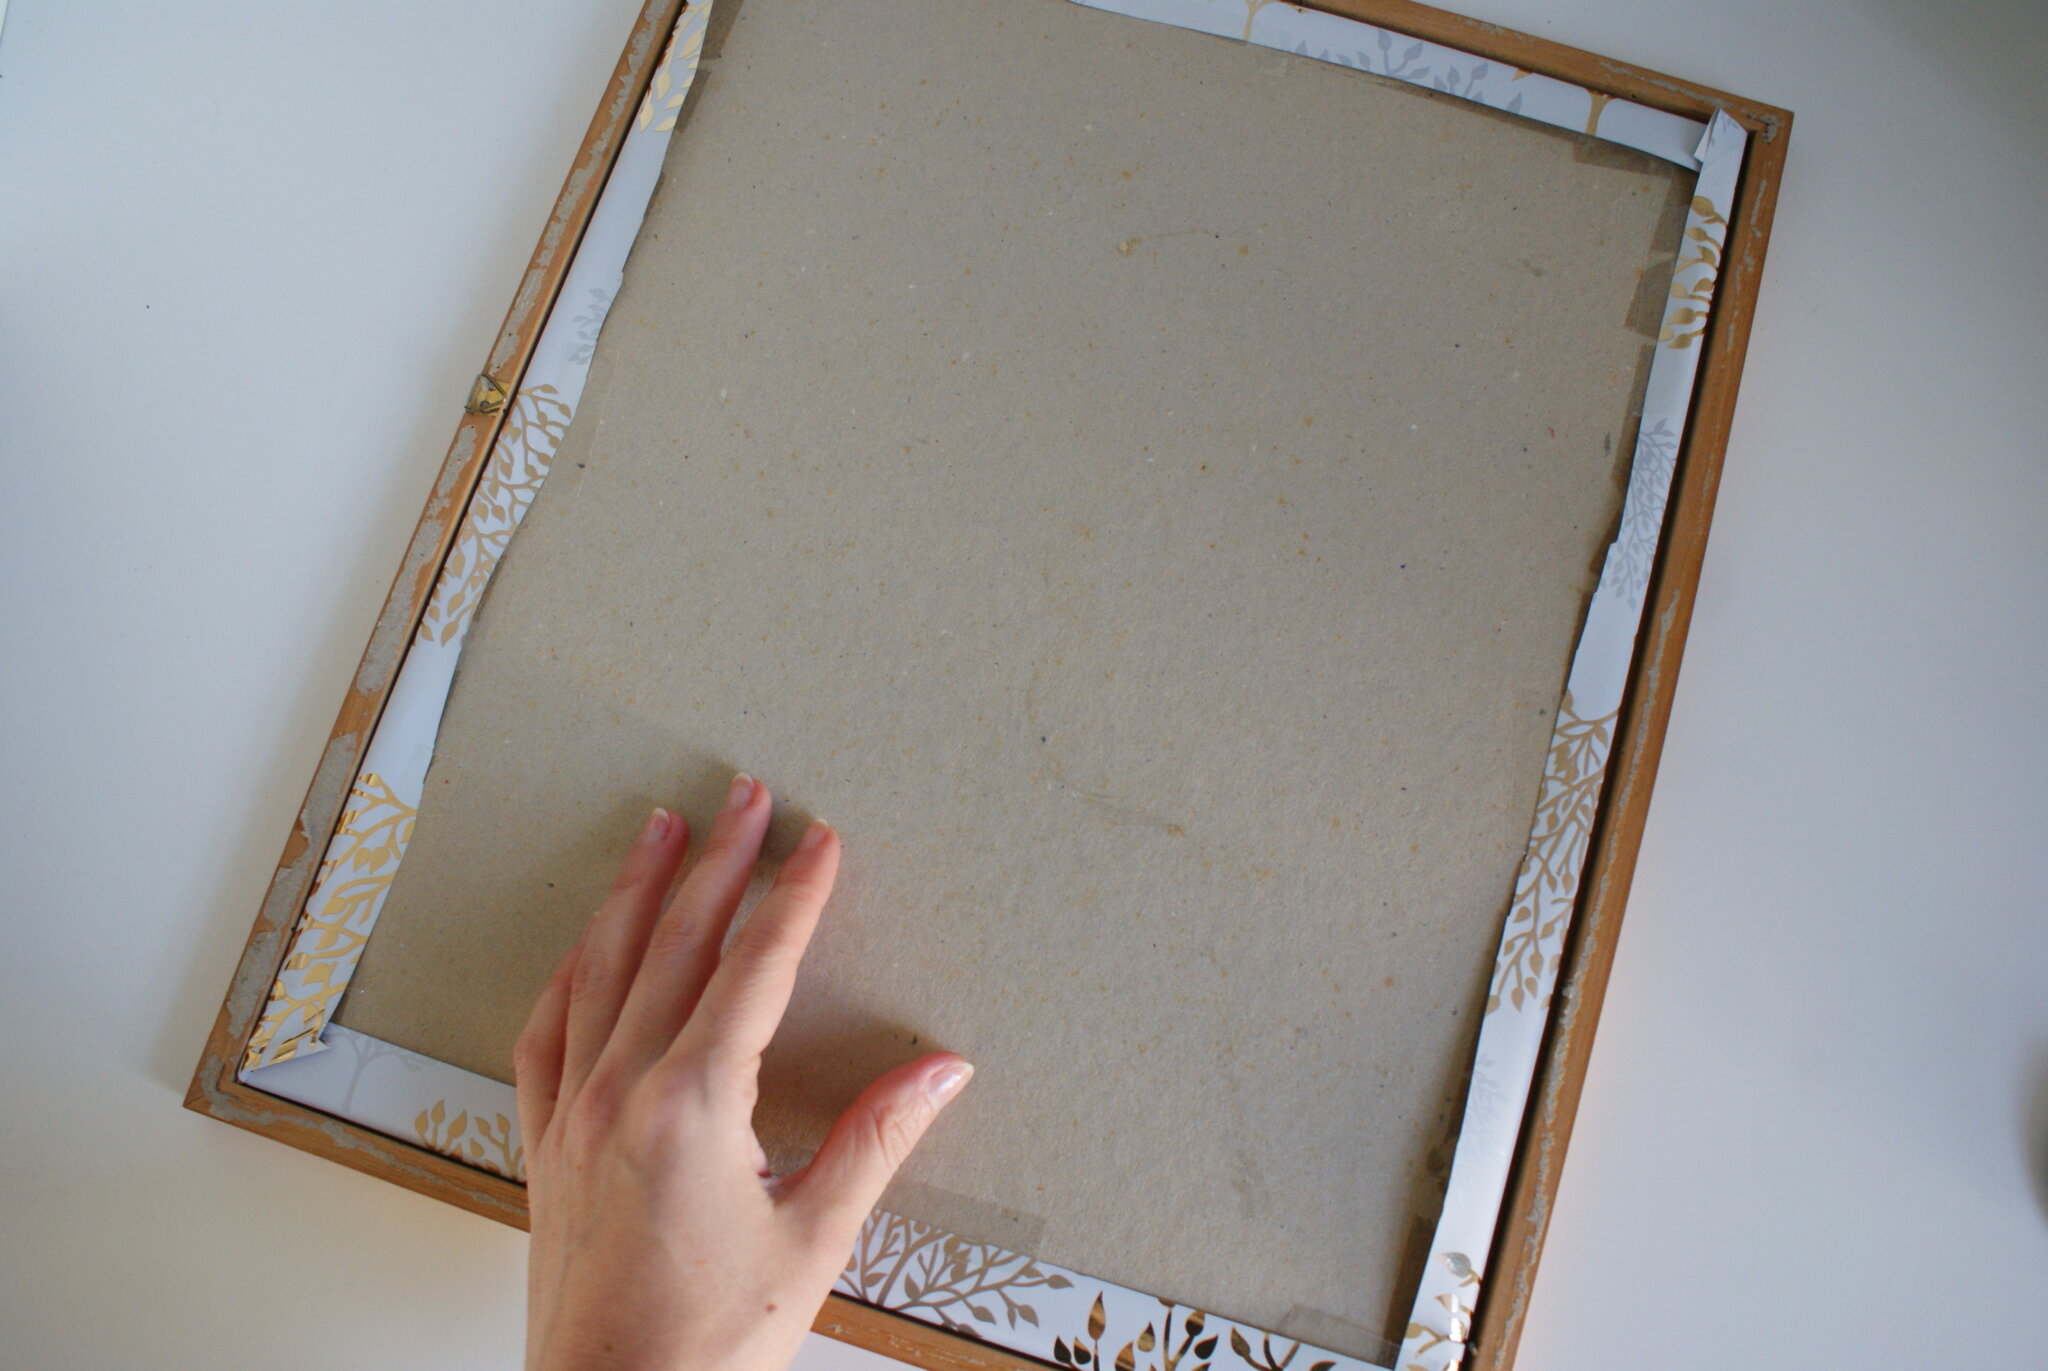 diy dry erase board 5 minute cheap tutorial handmade dollar store